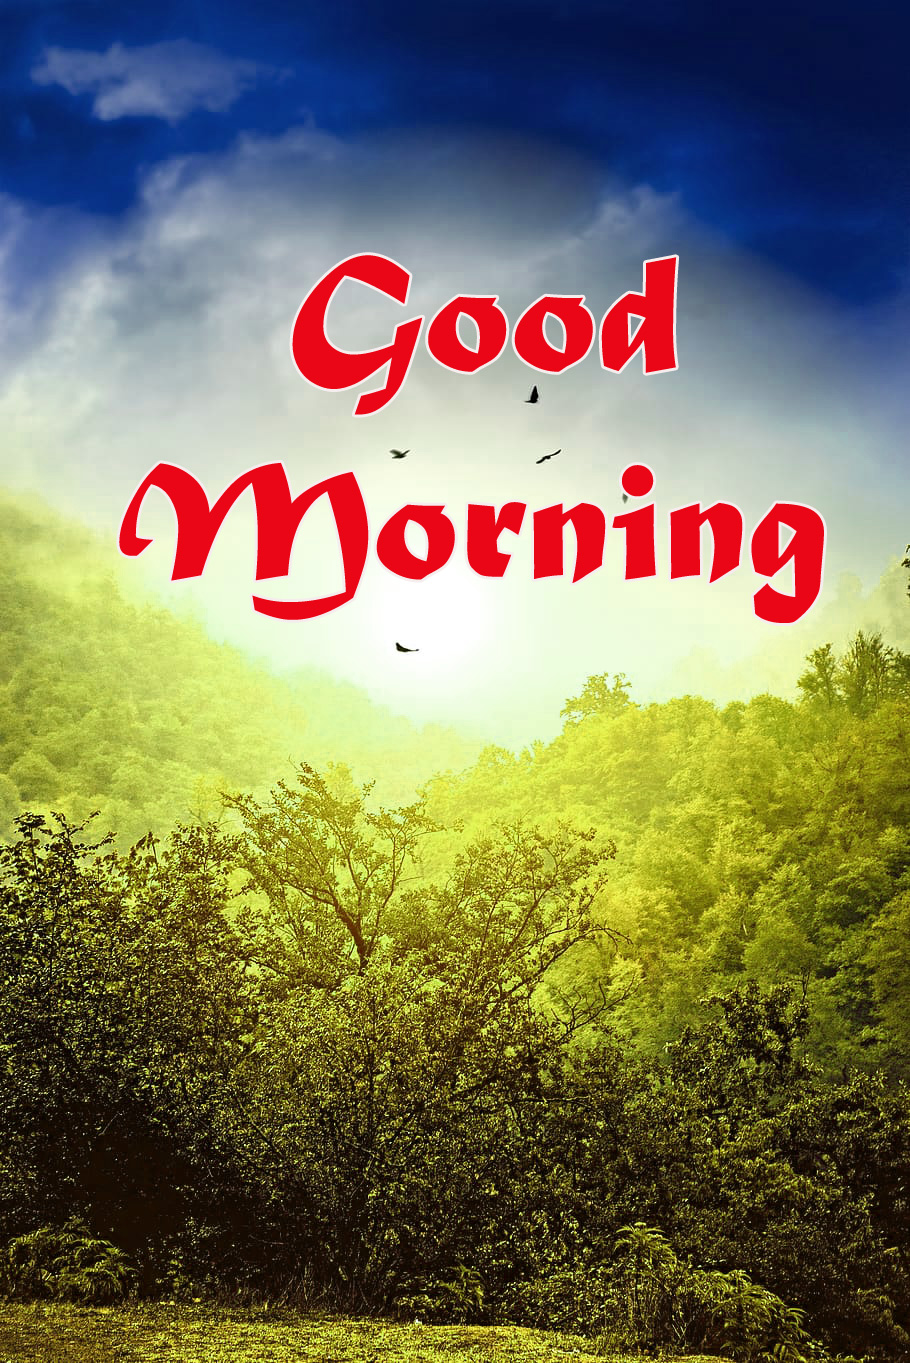 Nature-Good-Morning-Images-2